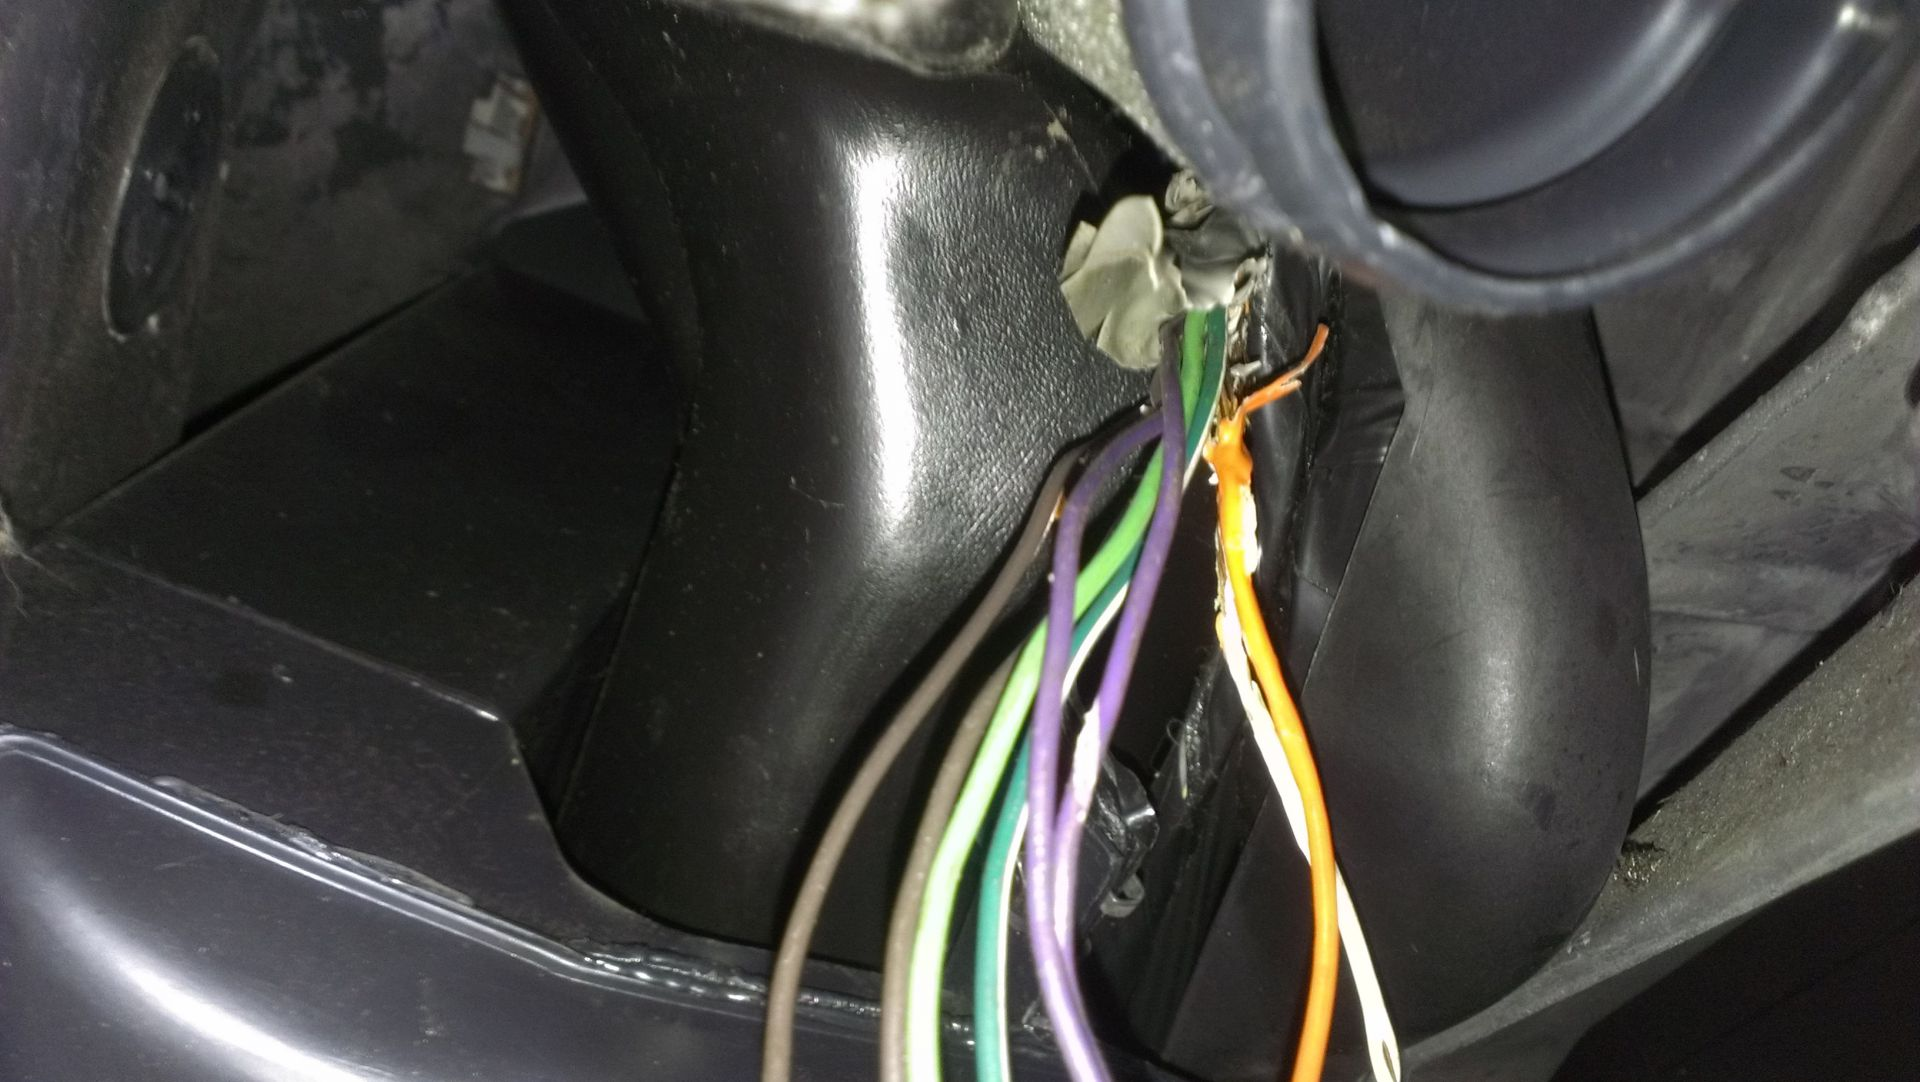 astro wires under dash shorting out